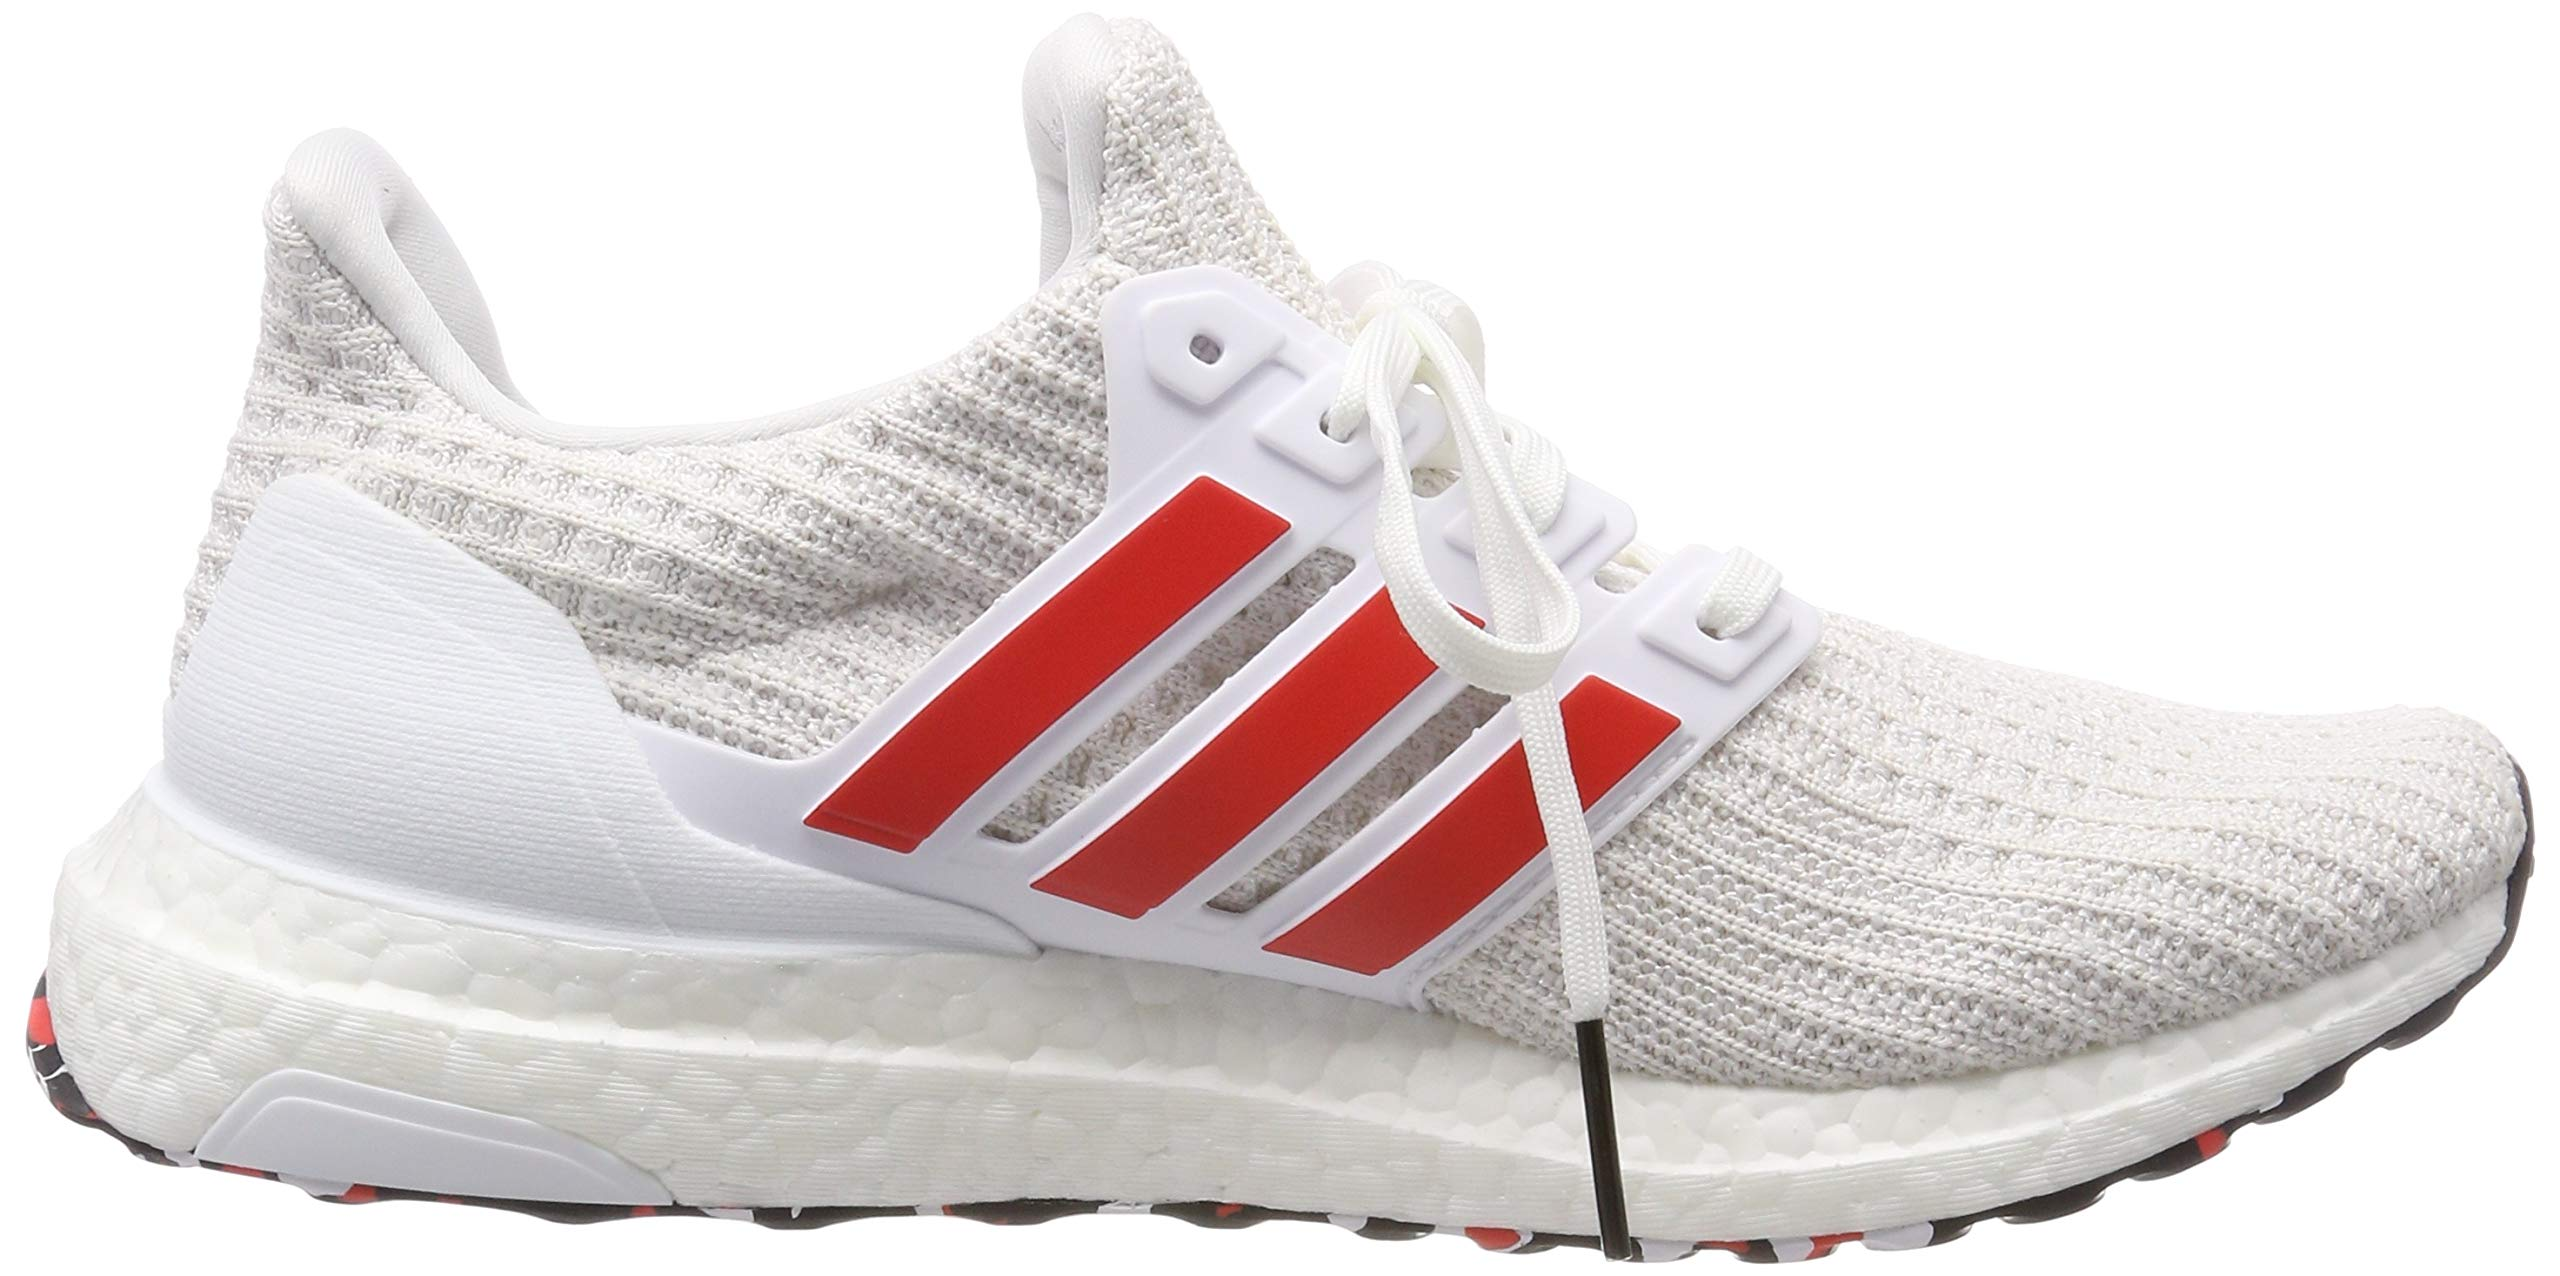 71NkLfe66ZL - adidas Men's Ultraboost Running Shoes